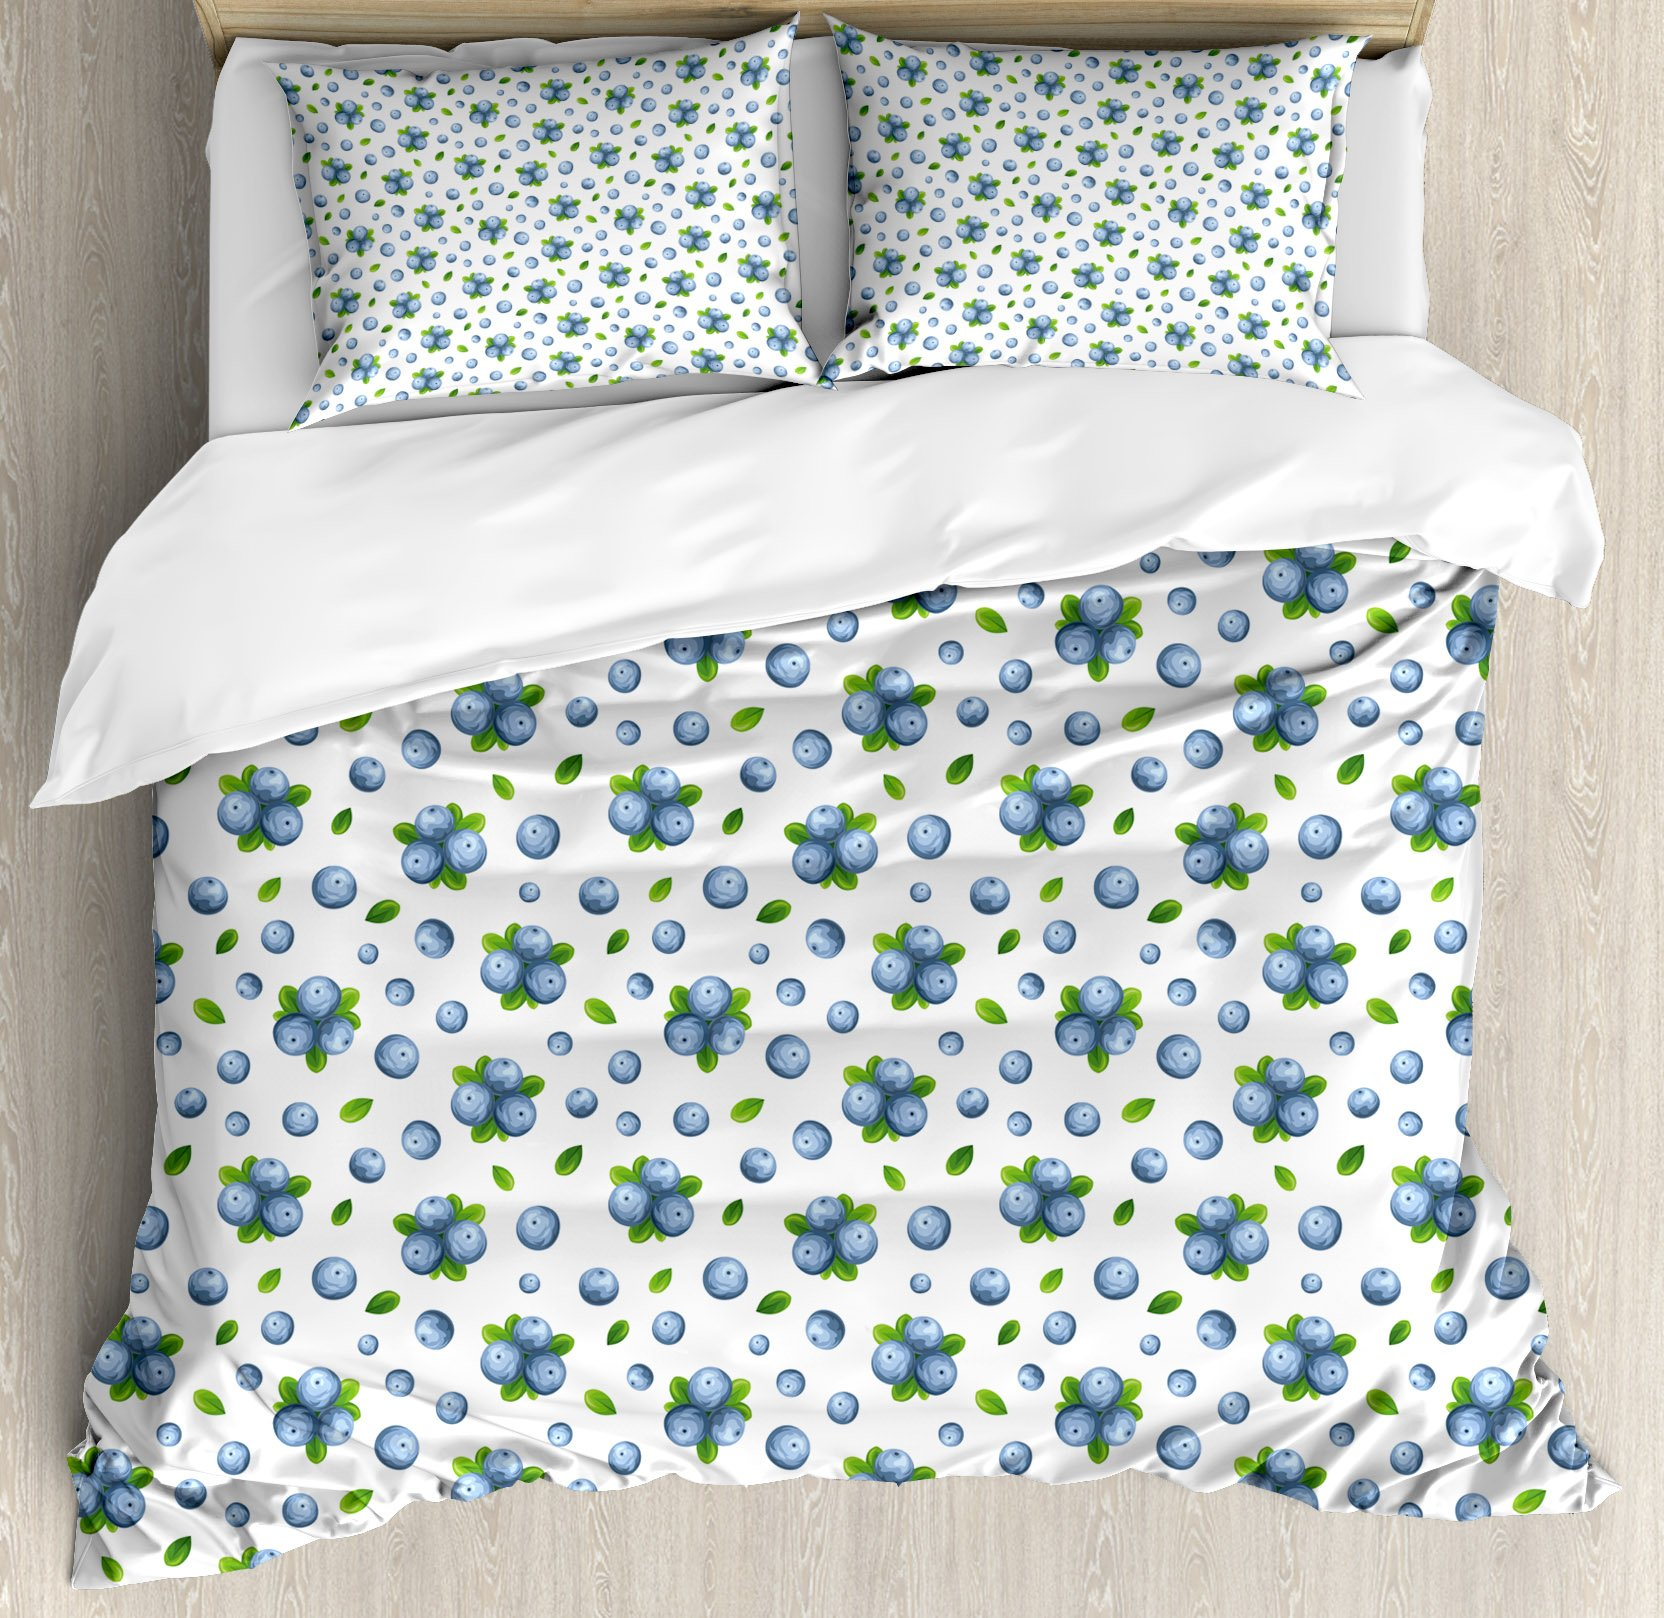 Kitchen Wall Duvet Cover Set by Ambesonne, Fresh Blueberries Ripe Juicy Fruits Summer Organics Food Painting Style, 3 Piece Bedding Set with Pillow Shams, Queen / Full, Blue Green White